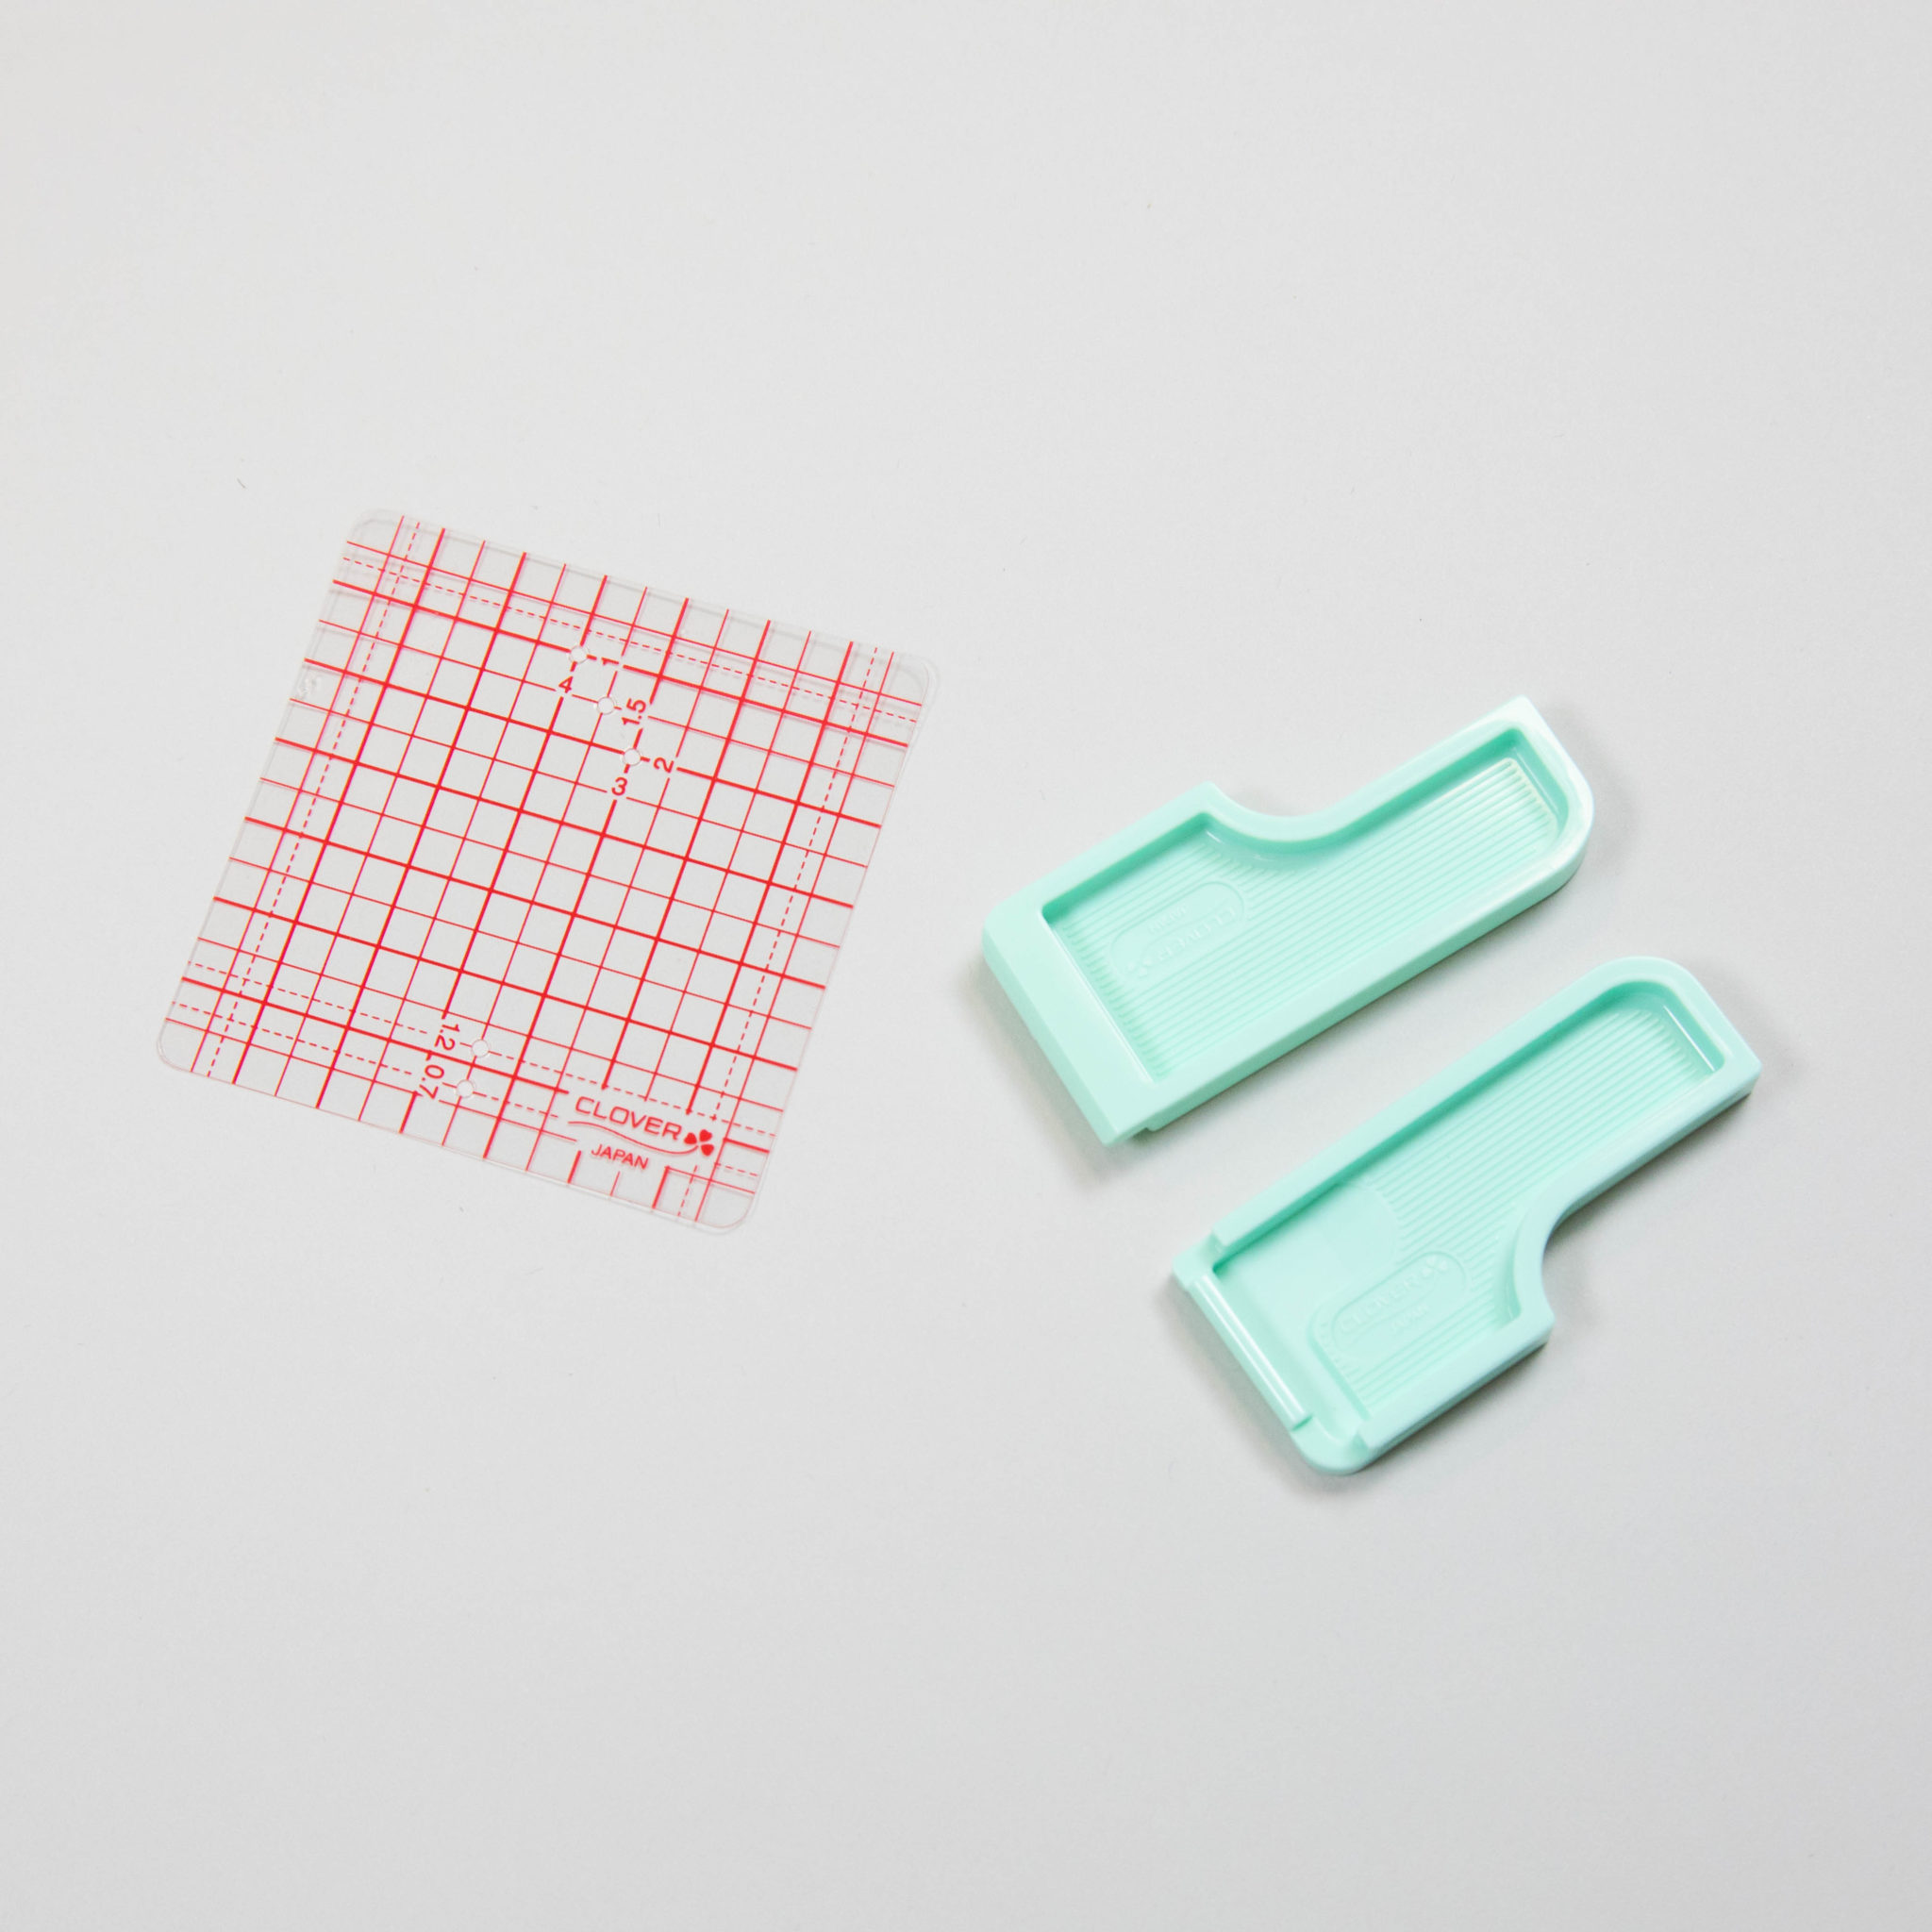 Made to Sew Clover Stitch Guide